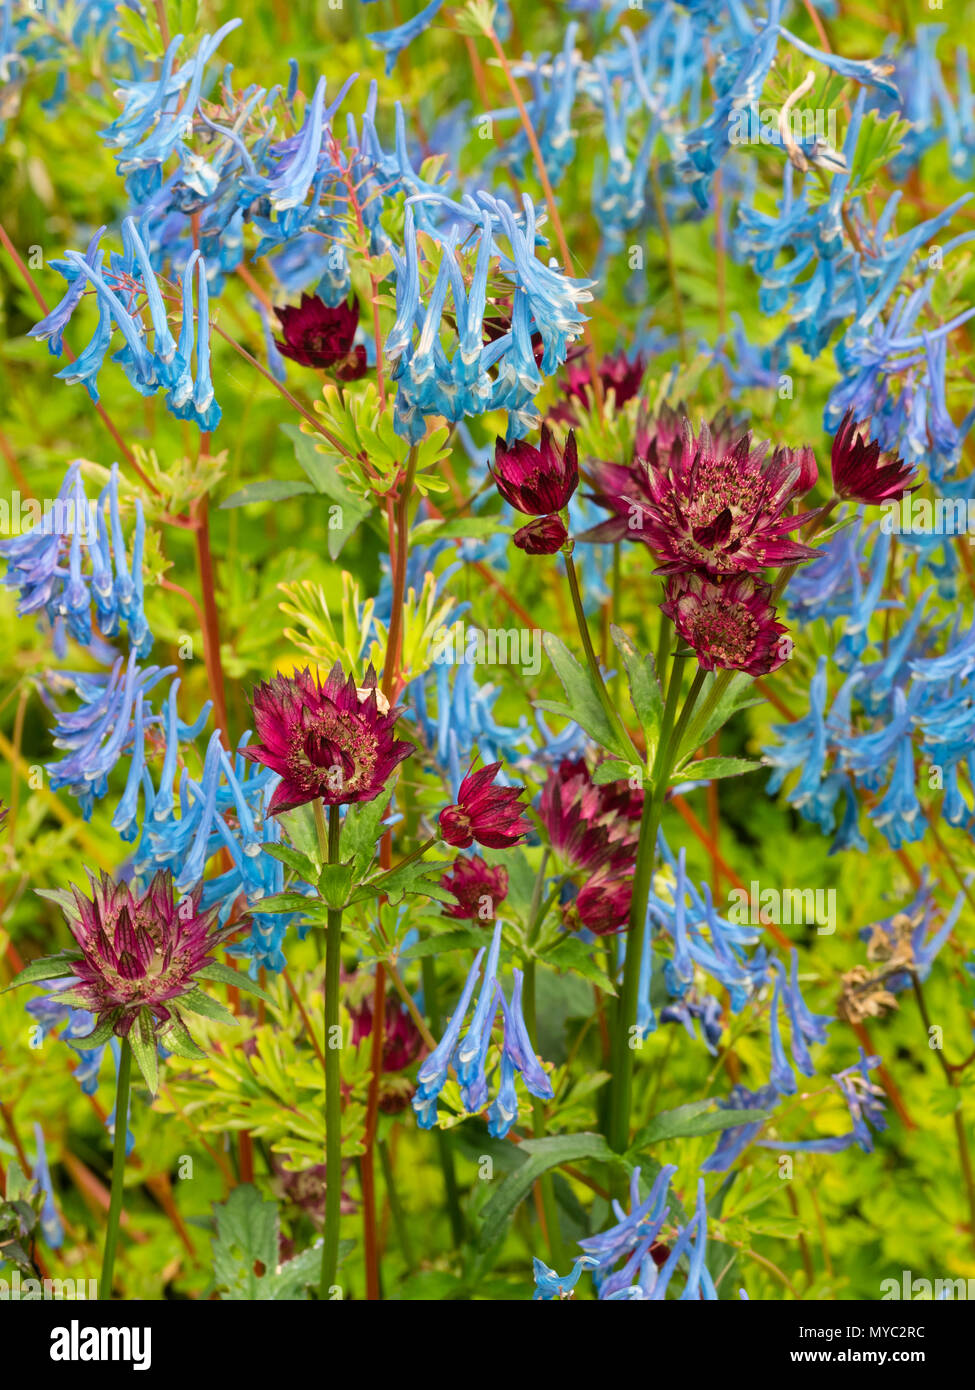 Blue flowered Corydalis elata x flexuosa 'Tory MP' mingles with red flowered Astrantia major 'Moulin Rouge' in an early summer planting combination - Stock Image